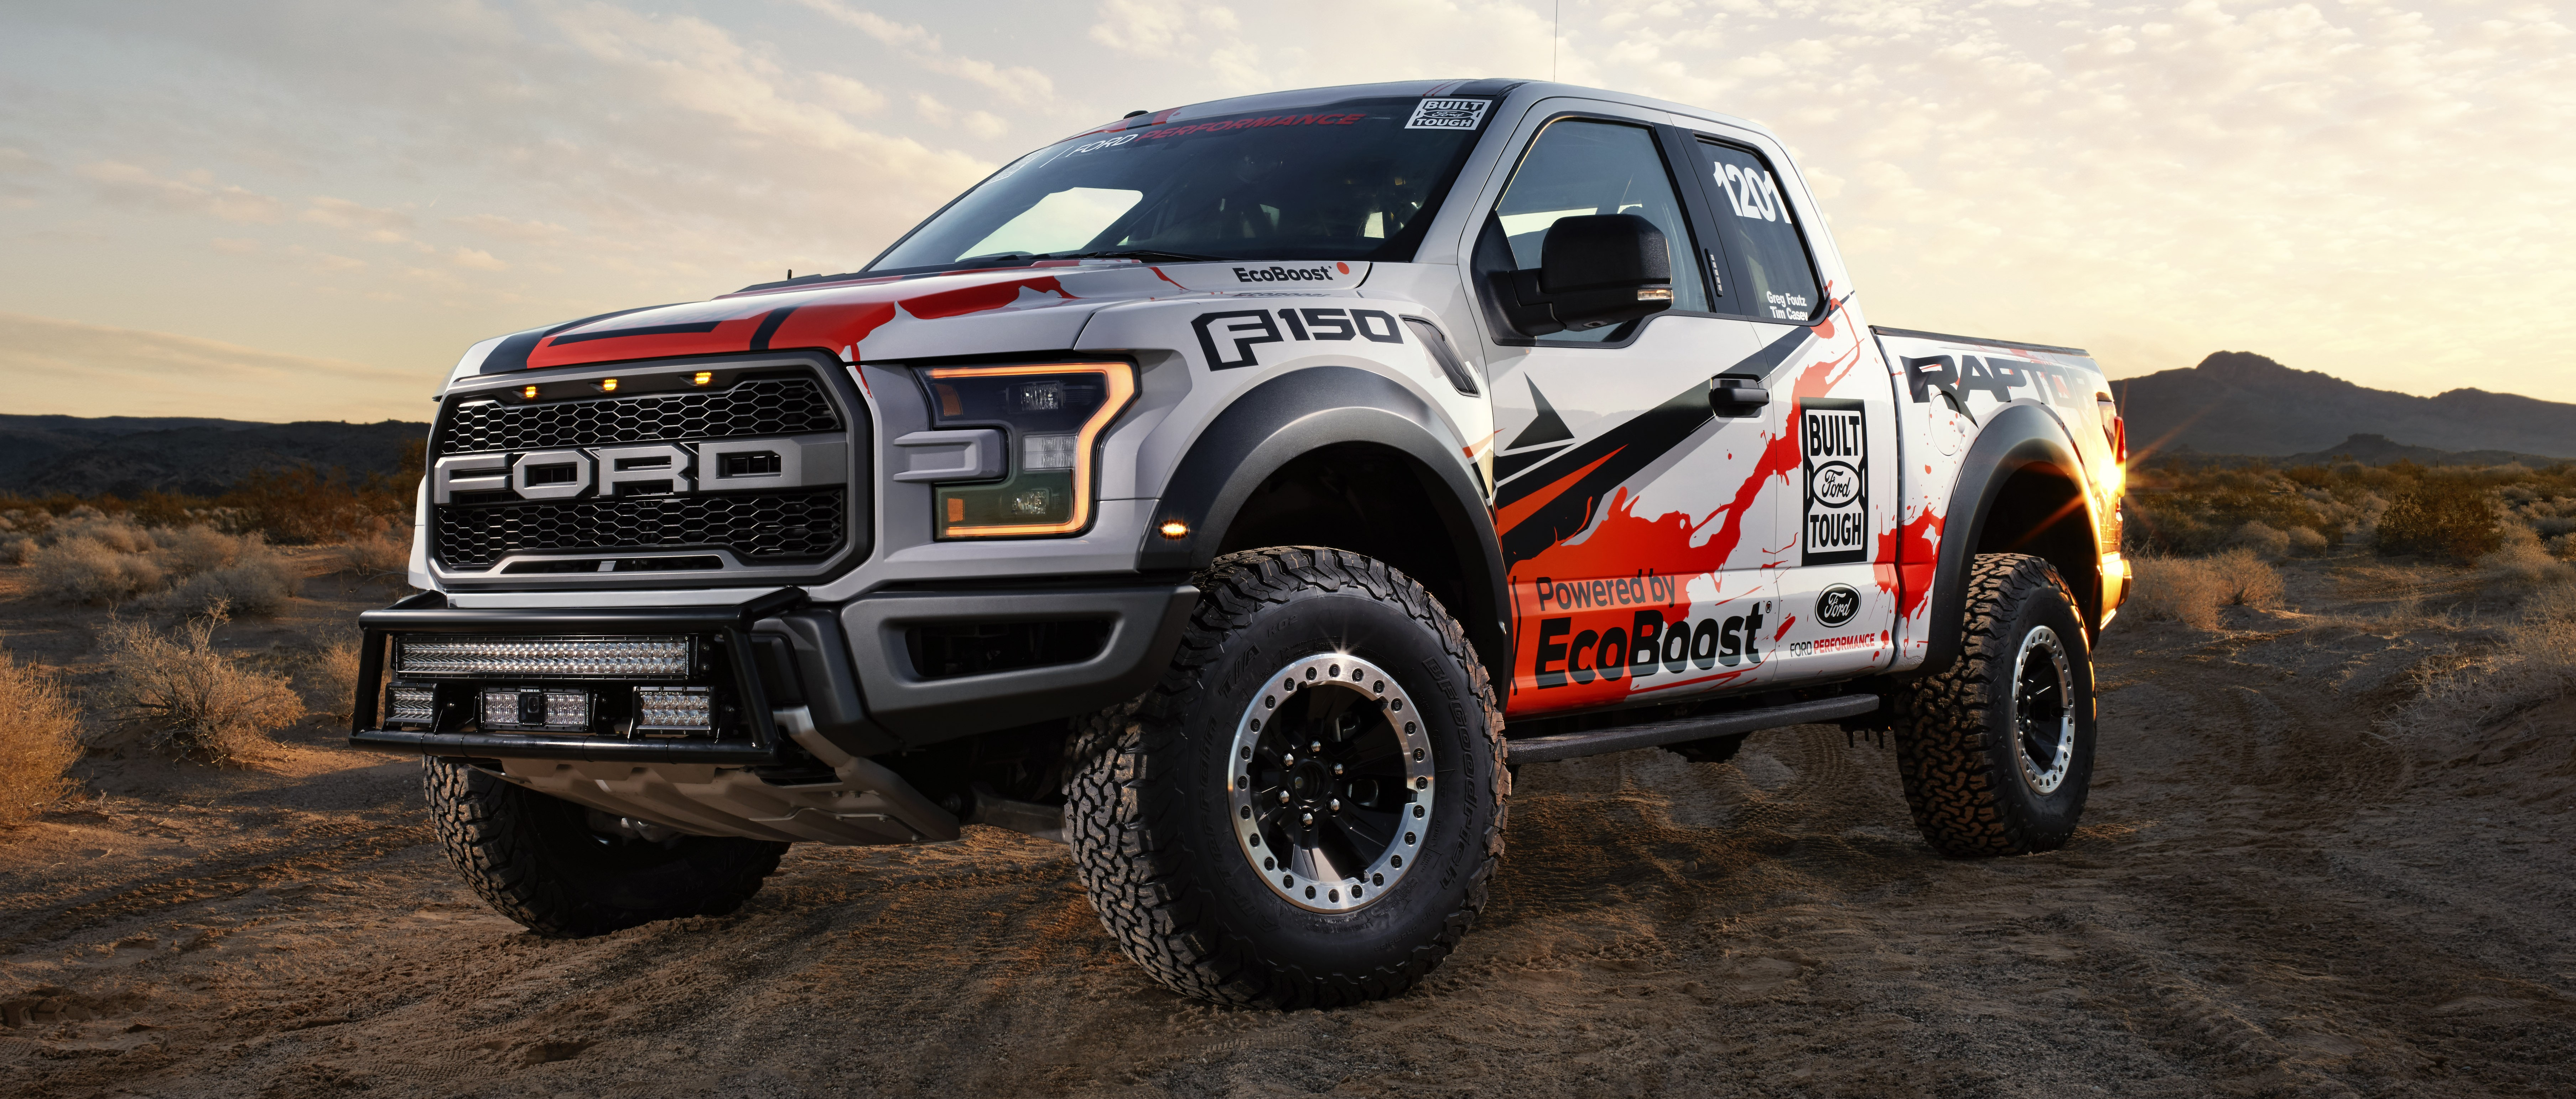 Ford F-150 Raptor For Sale >> 2017 Ford F-150 Raptor to compete in off-road racing